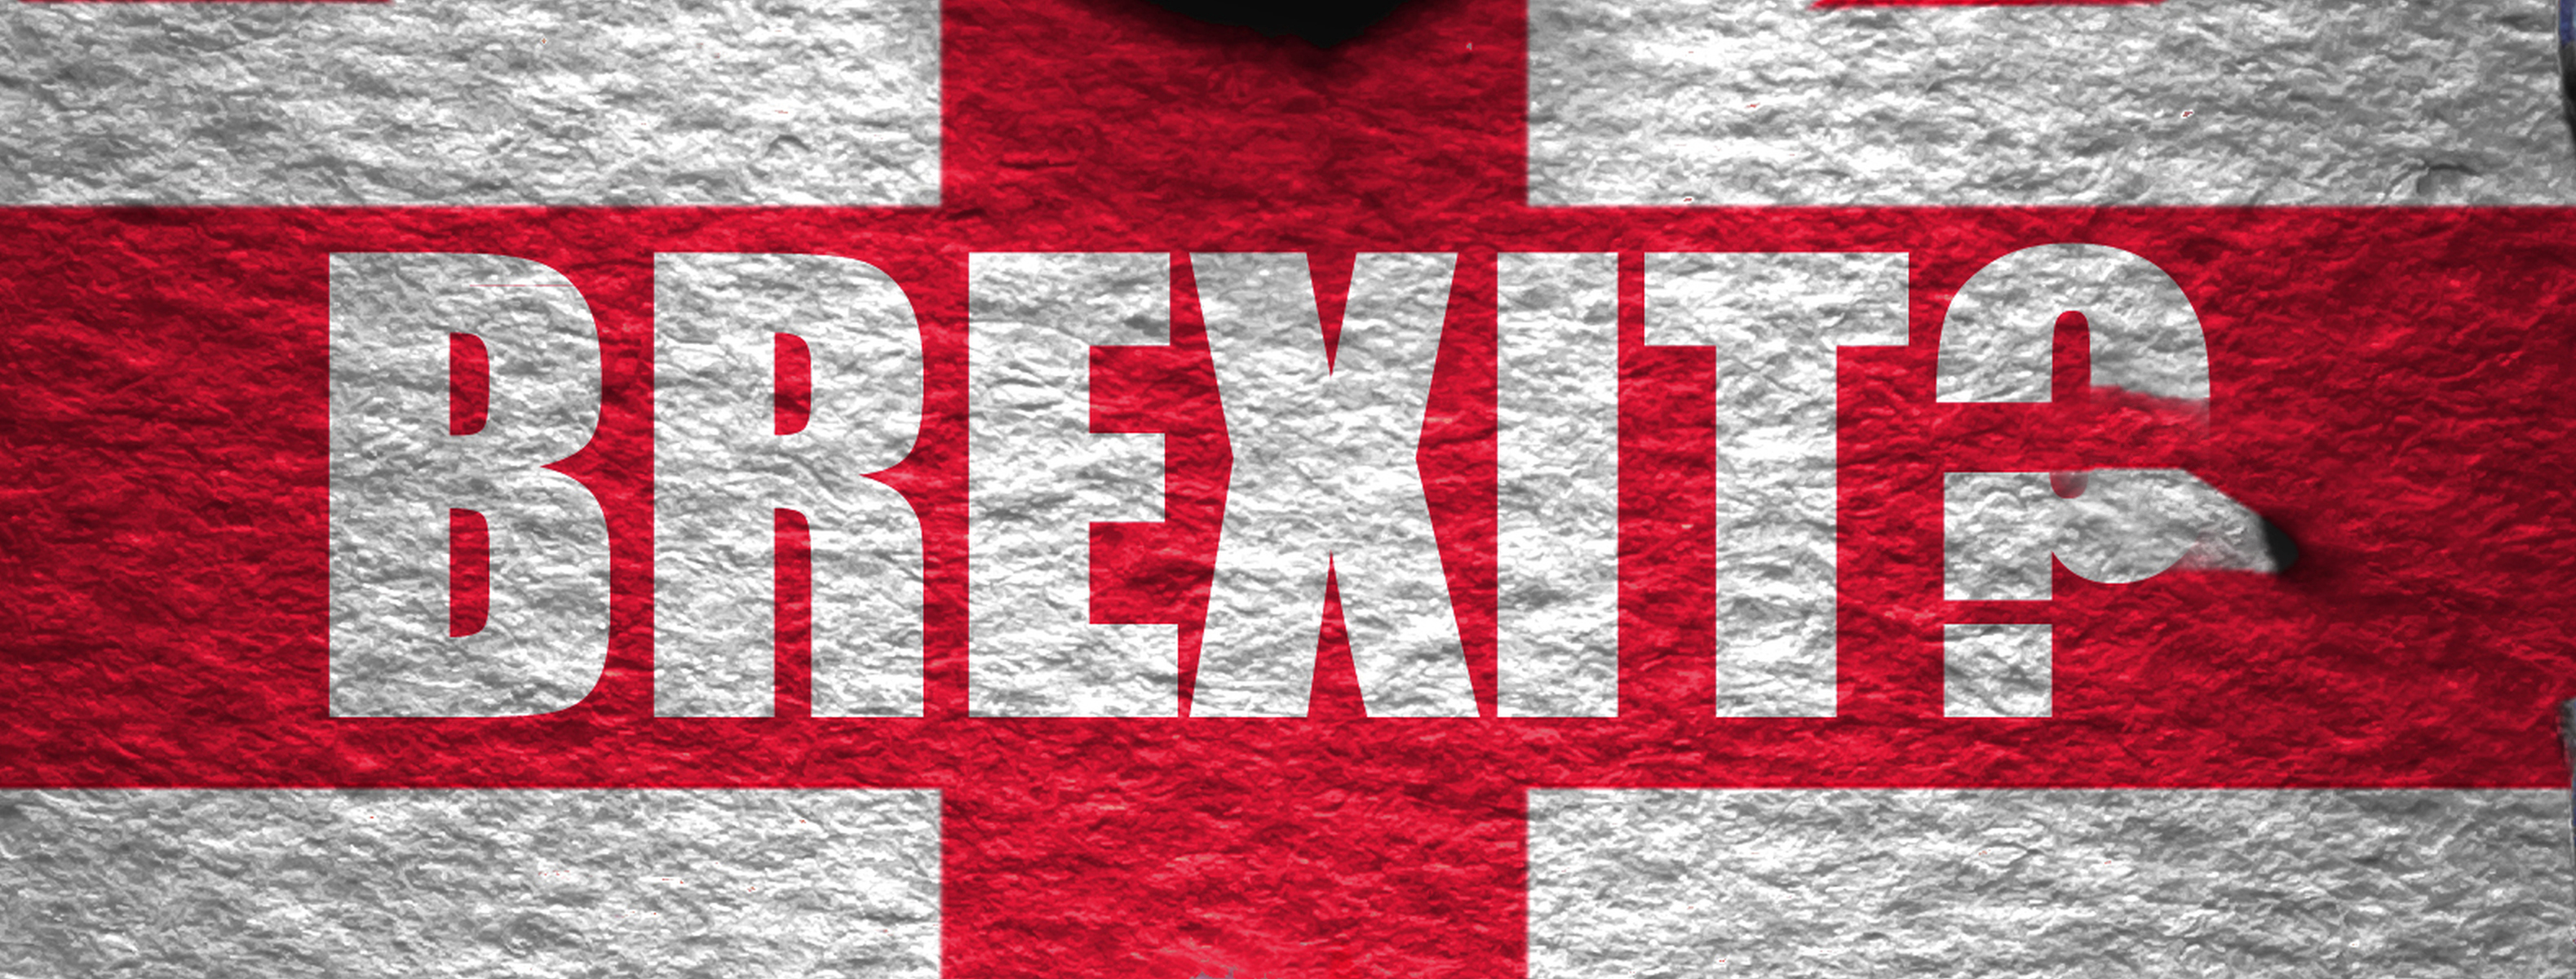 Brexit: what are the regulatory implications for the food and animal health industry?